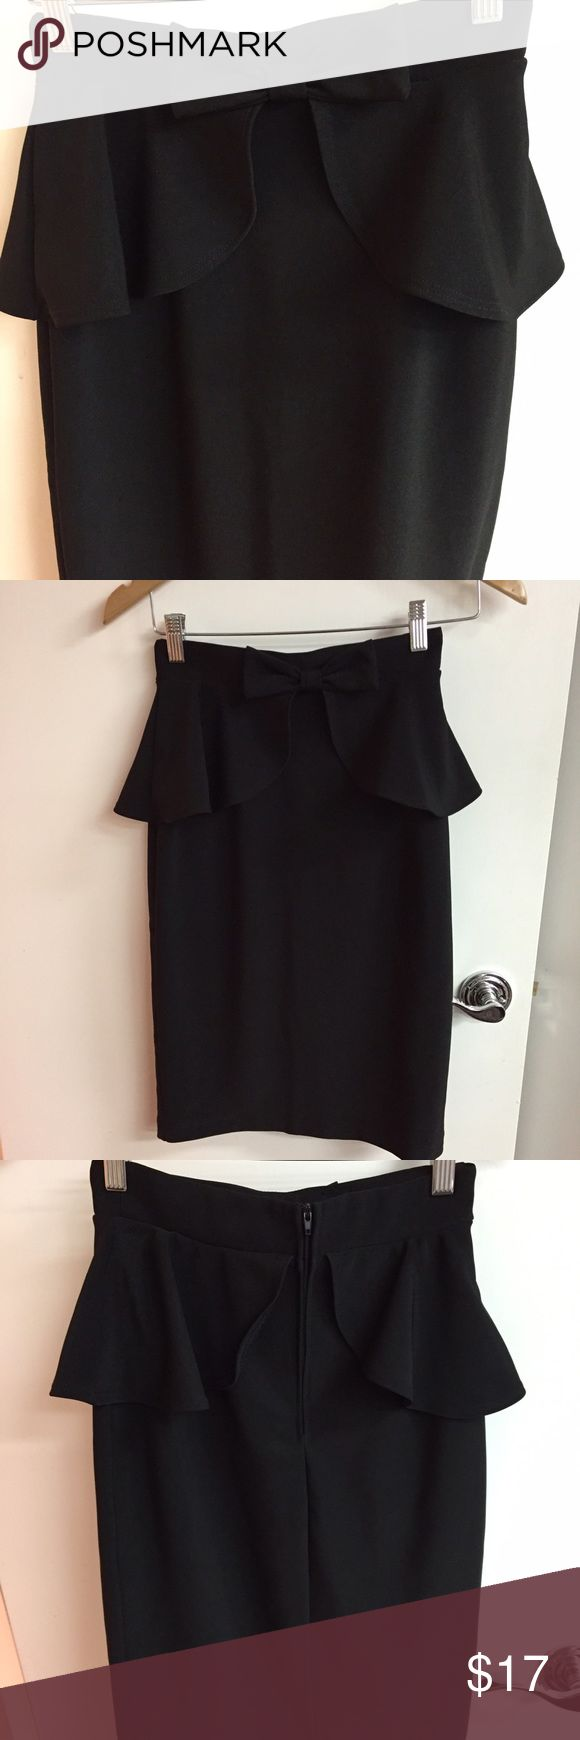 NWOT Black pencil skirt with bow detail Black pencil skirt with bow and peplum detail. Never used!!!!! Lulu's Skirts Pencil